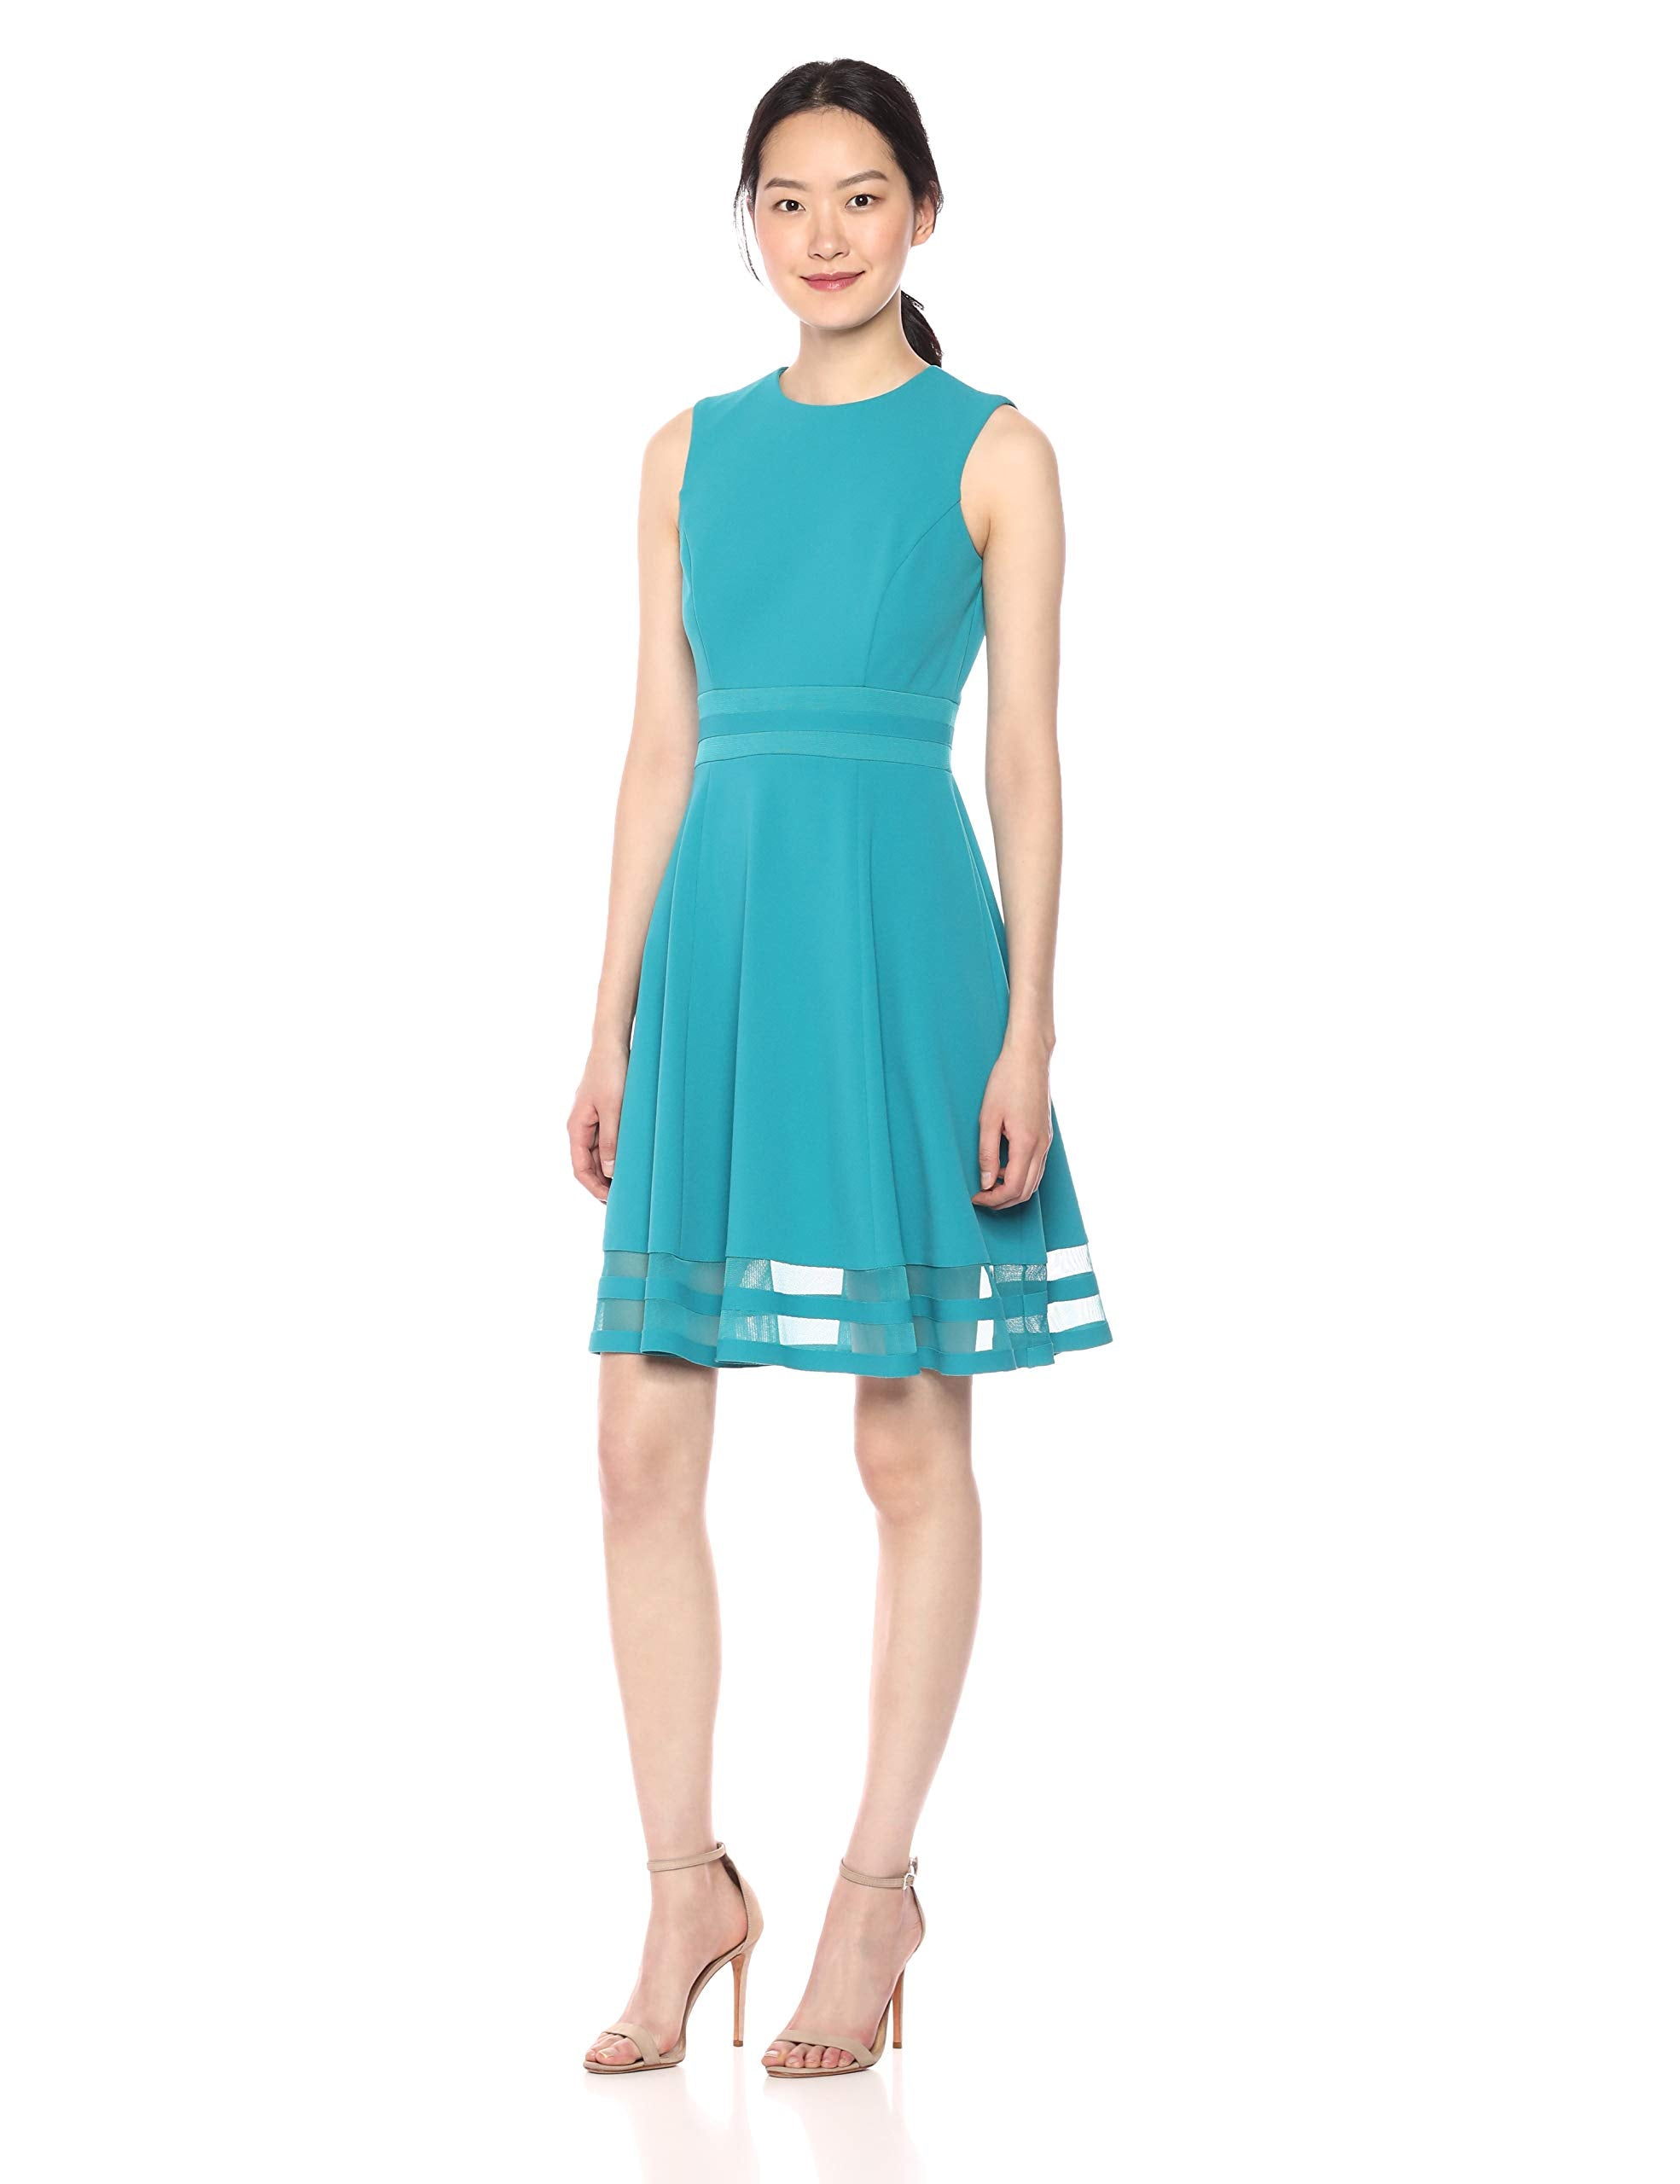 Calvin Klein Women's Sleeveless Round Neck Fit and Flare Dress with Sheer Inserts, Lagoon, 14 - wiihuu